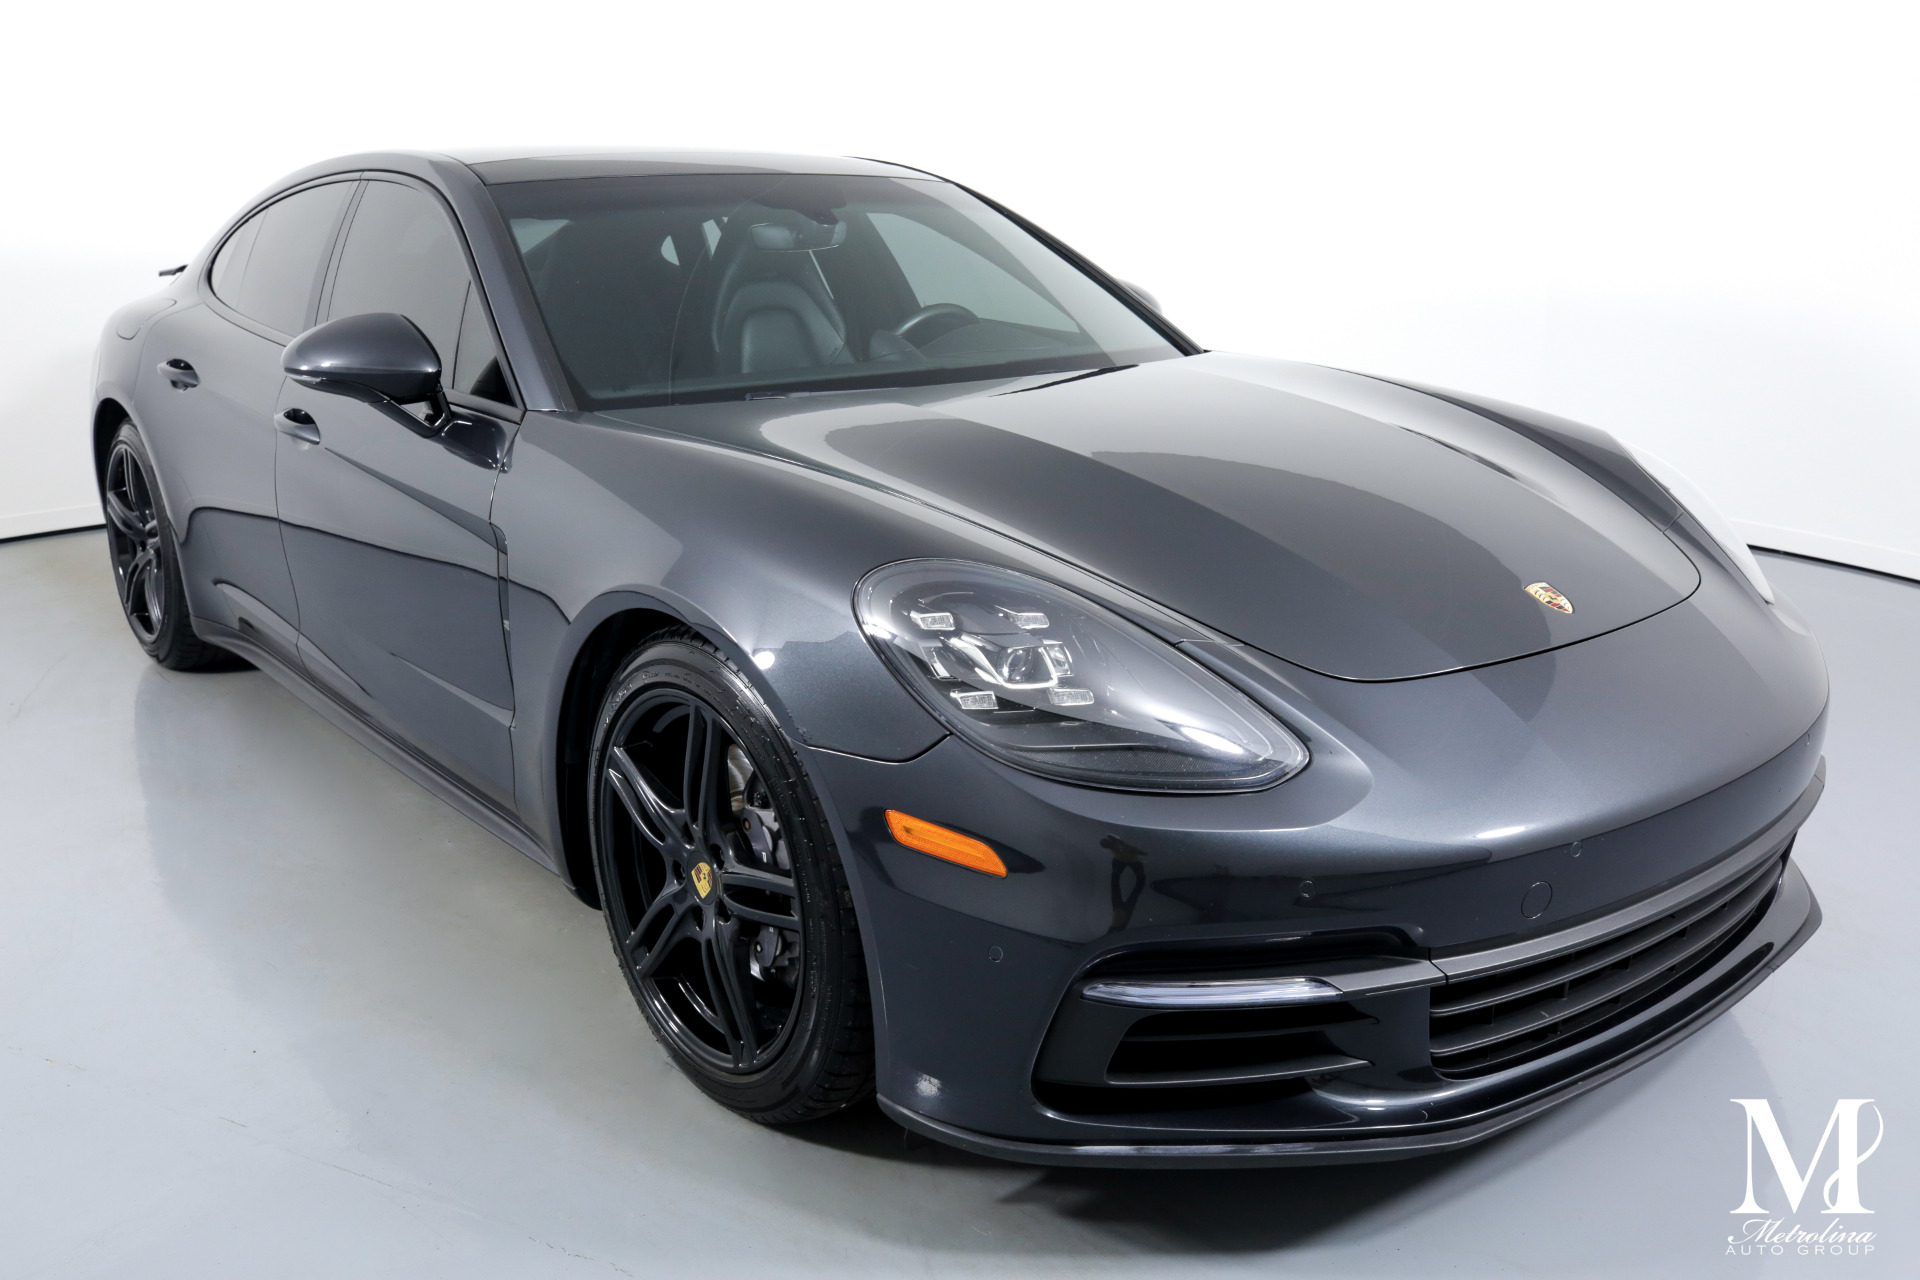 Used 2017 Porsche Panamera for sale $66,996 at Metrolina Auto Group in Charlotte NC 28217 - 2